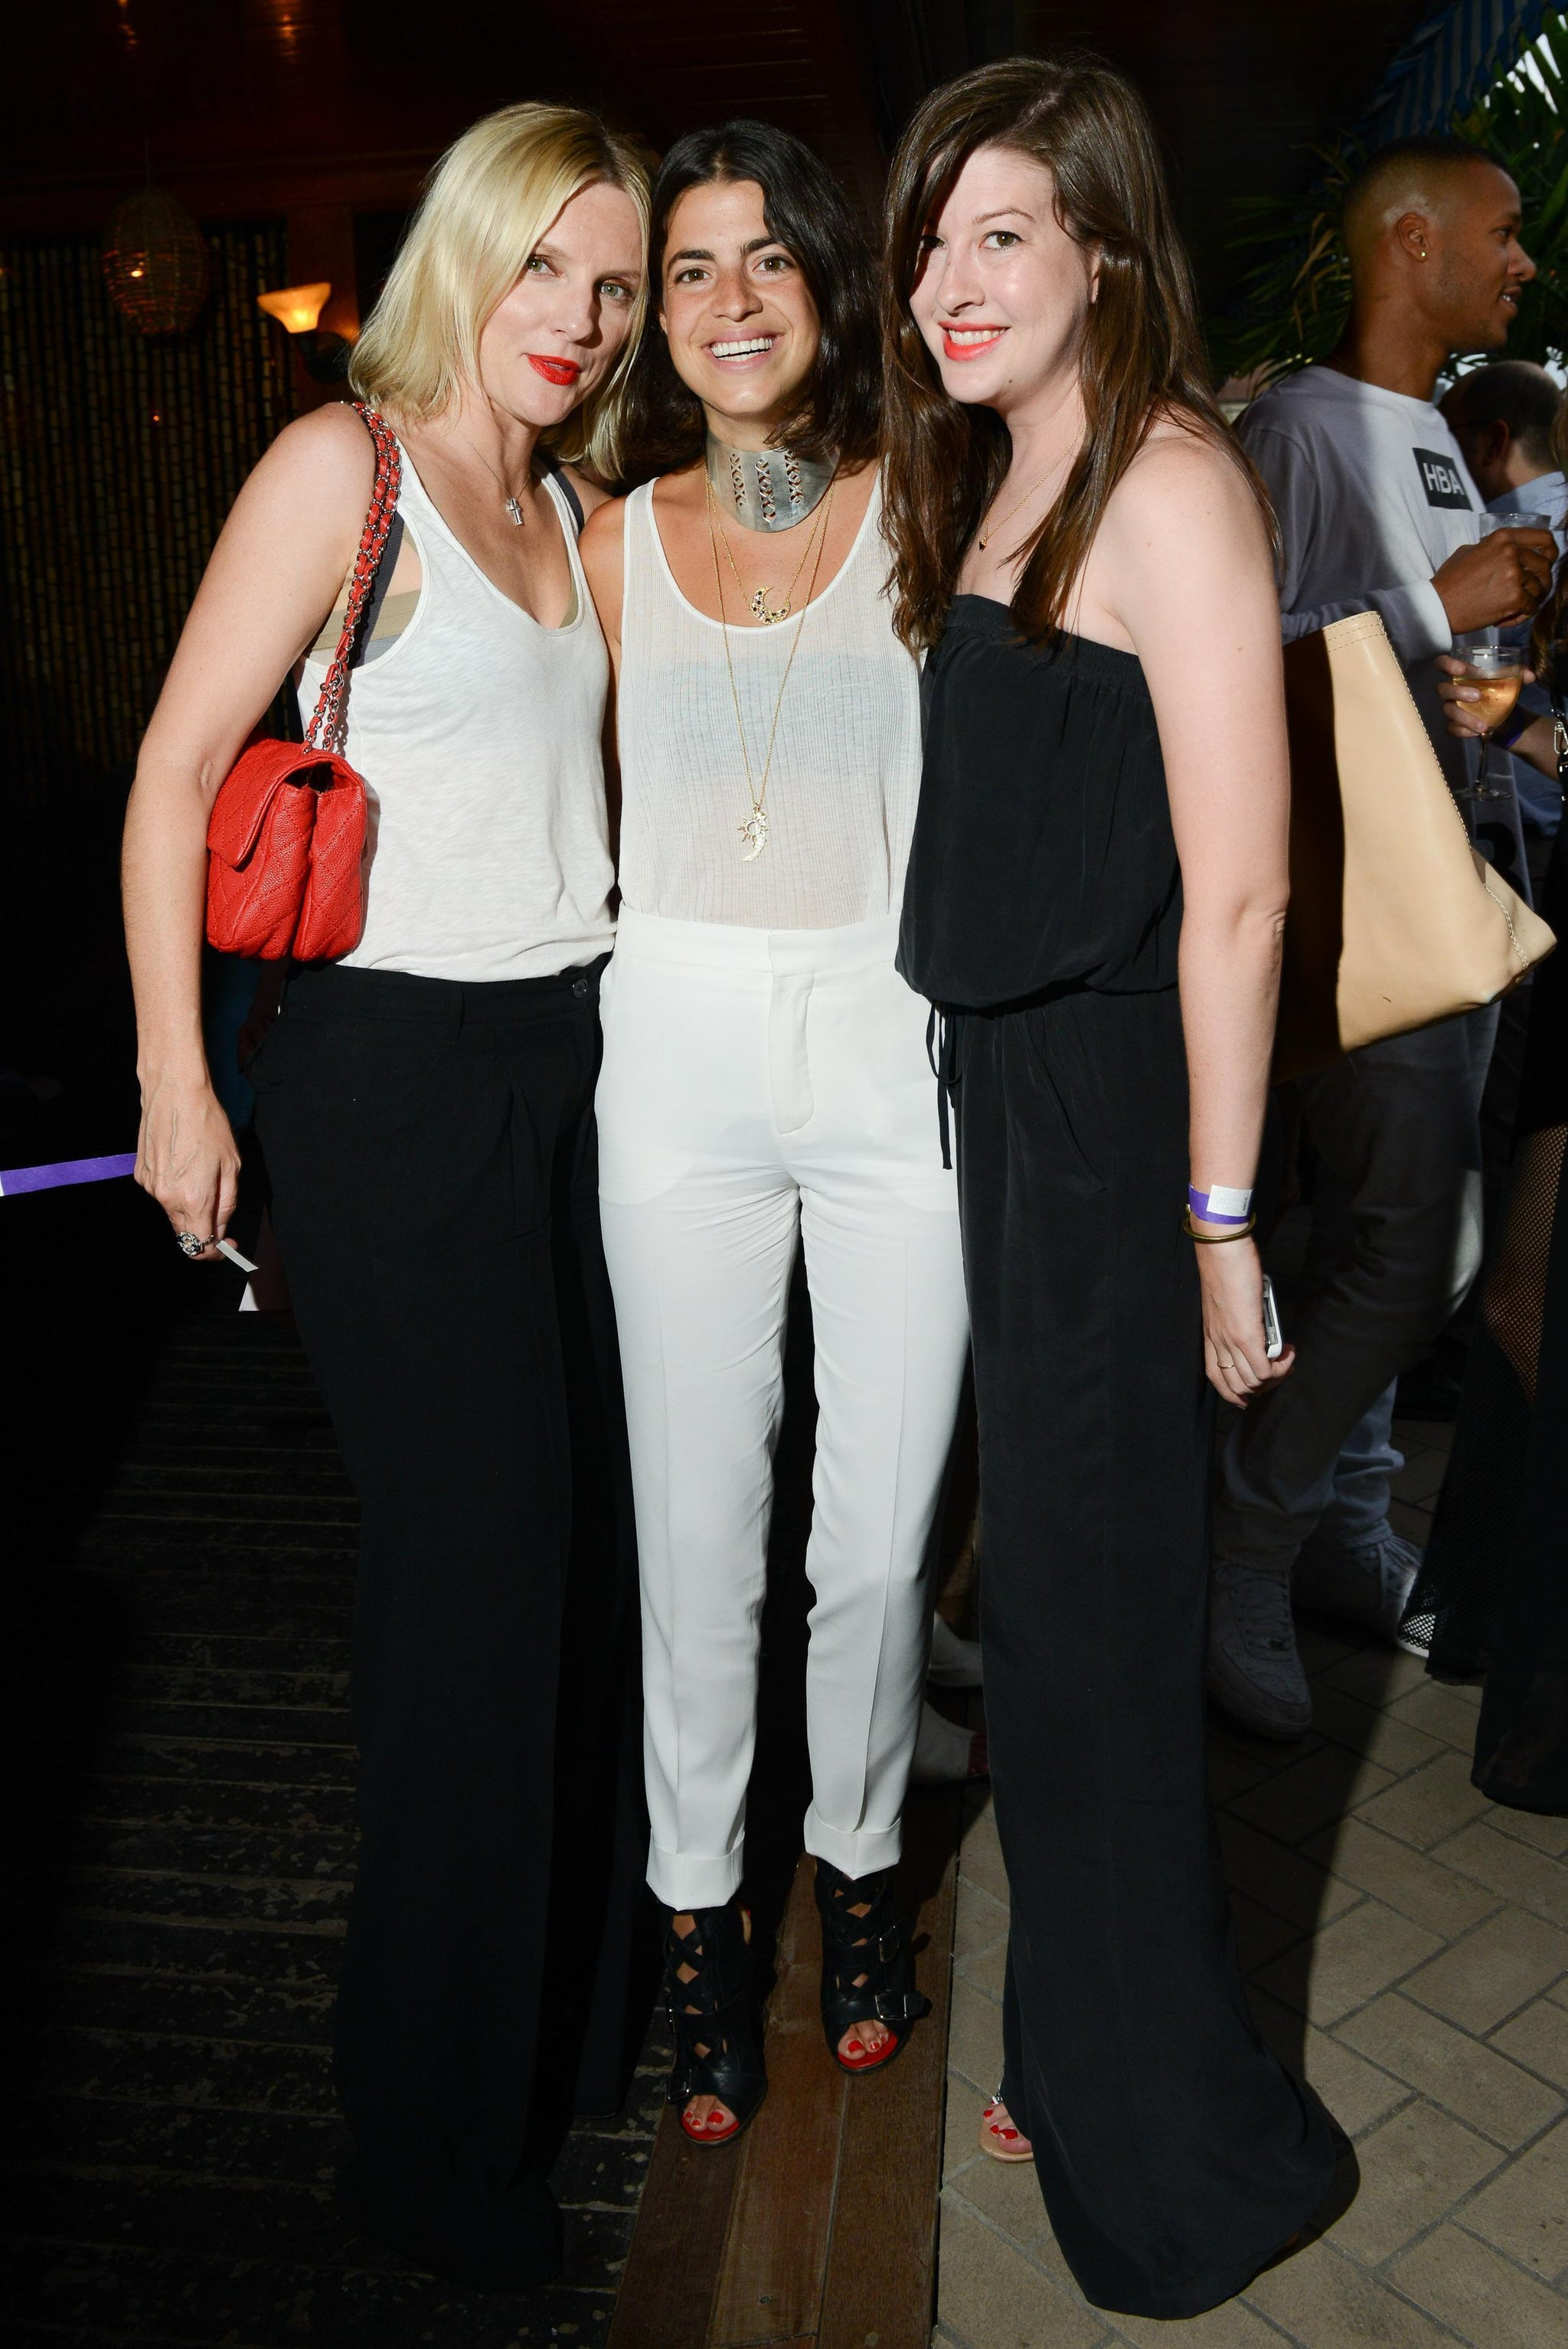 At the Maritime Hotel, Laura Brown, Leandra Medine, and Lea Chernikoff feted Young New York.